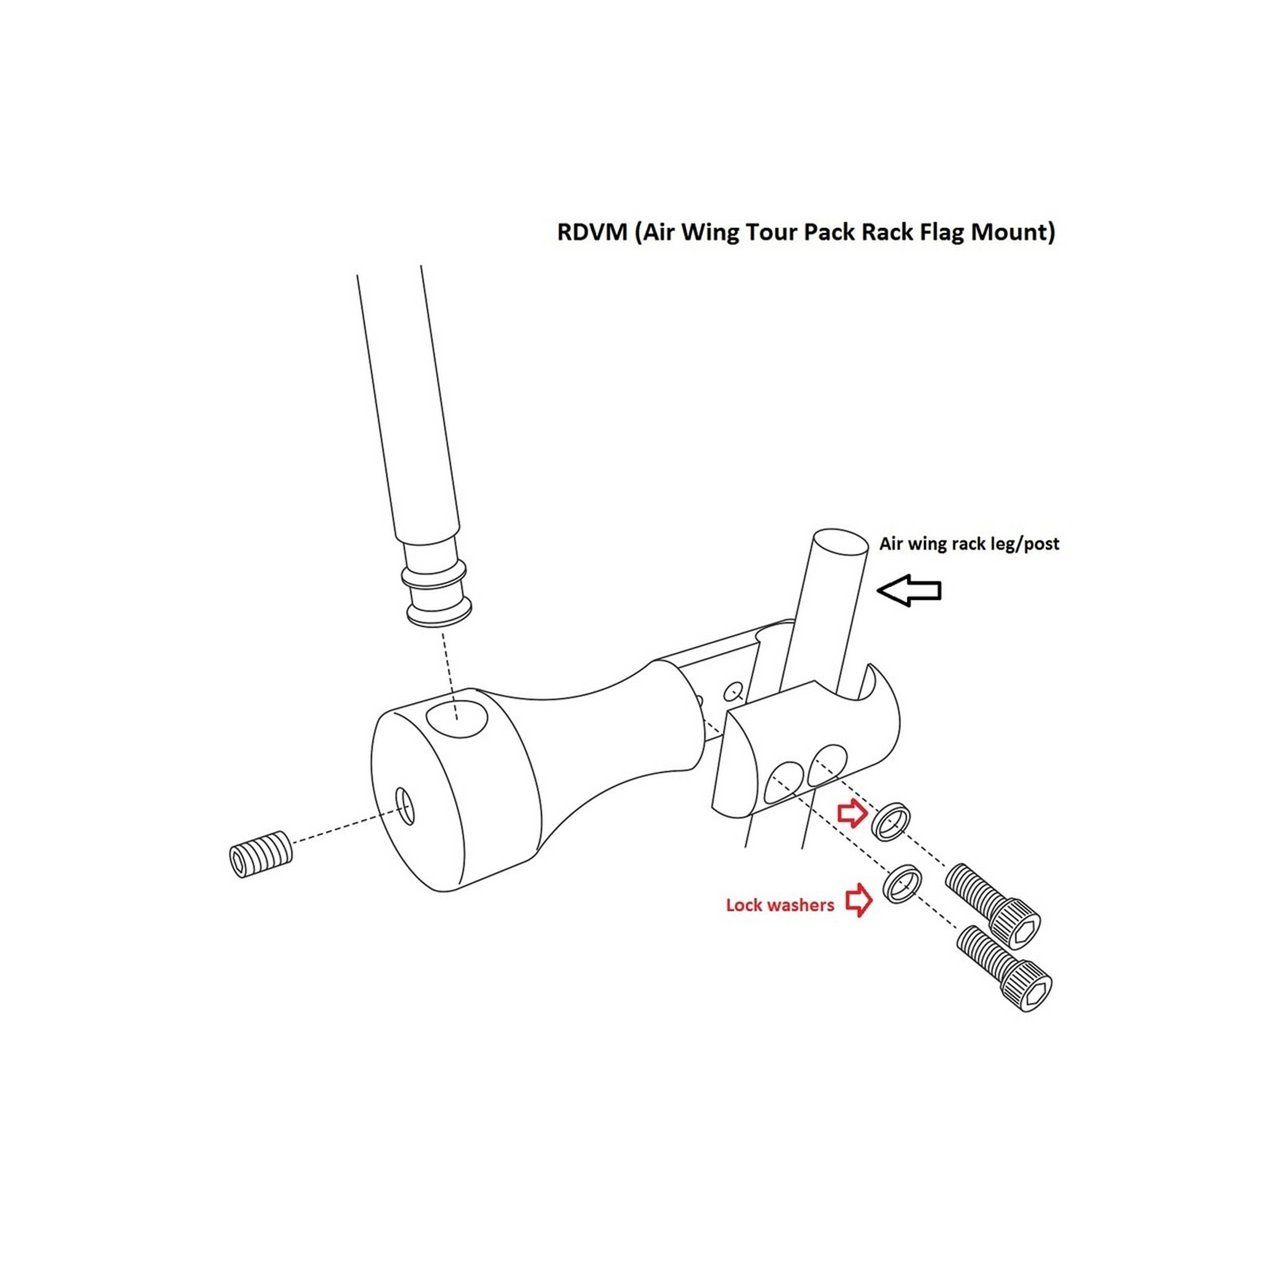 #RFM-RDVM for the Harley Air Wing rack installation (Exploded view)